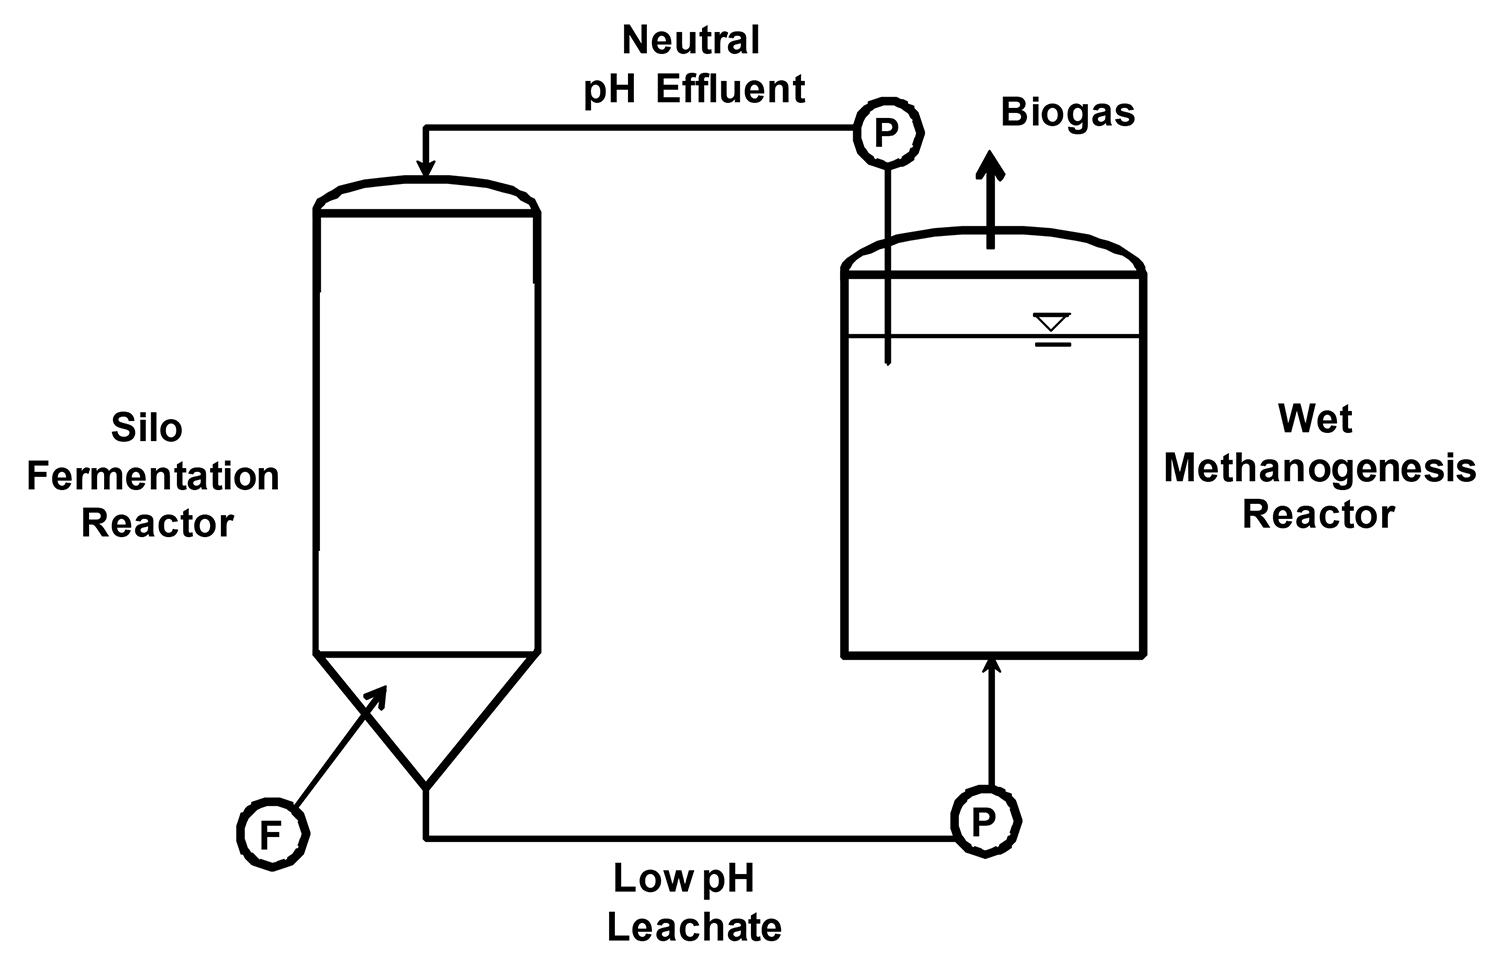 Schematic drawing of a two-phase, solid state anaerobic digestion system using a silo dry fermentation reactor.